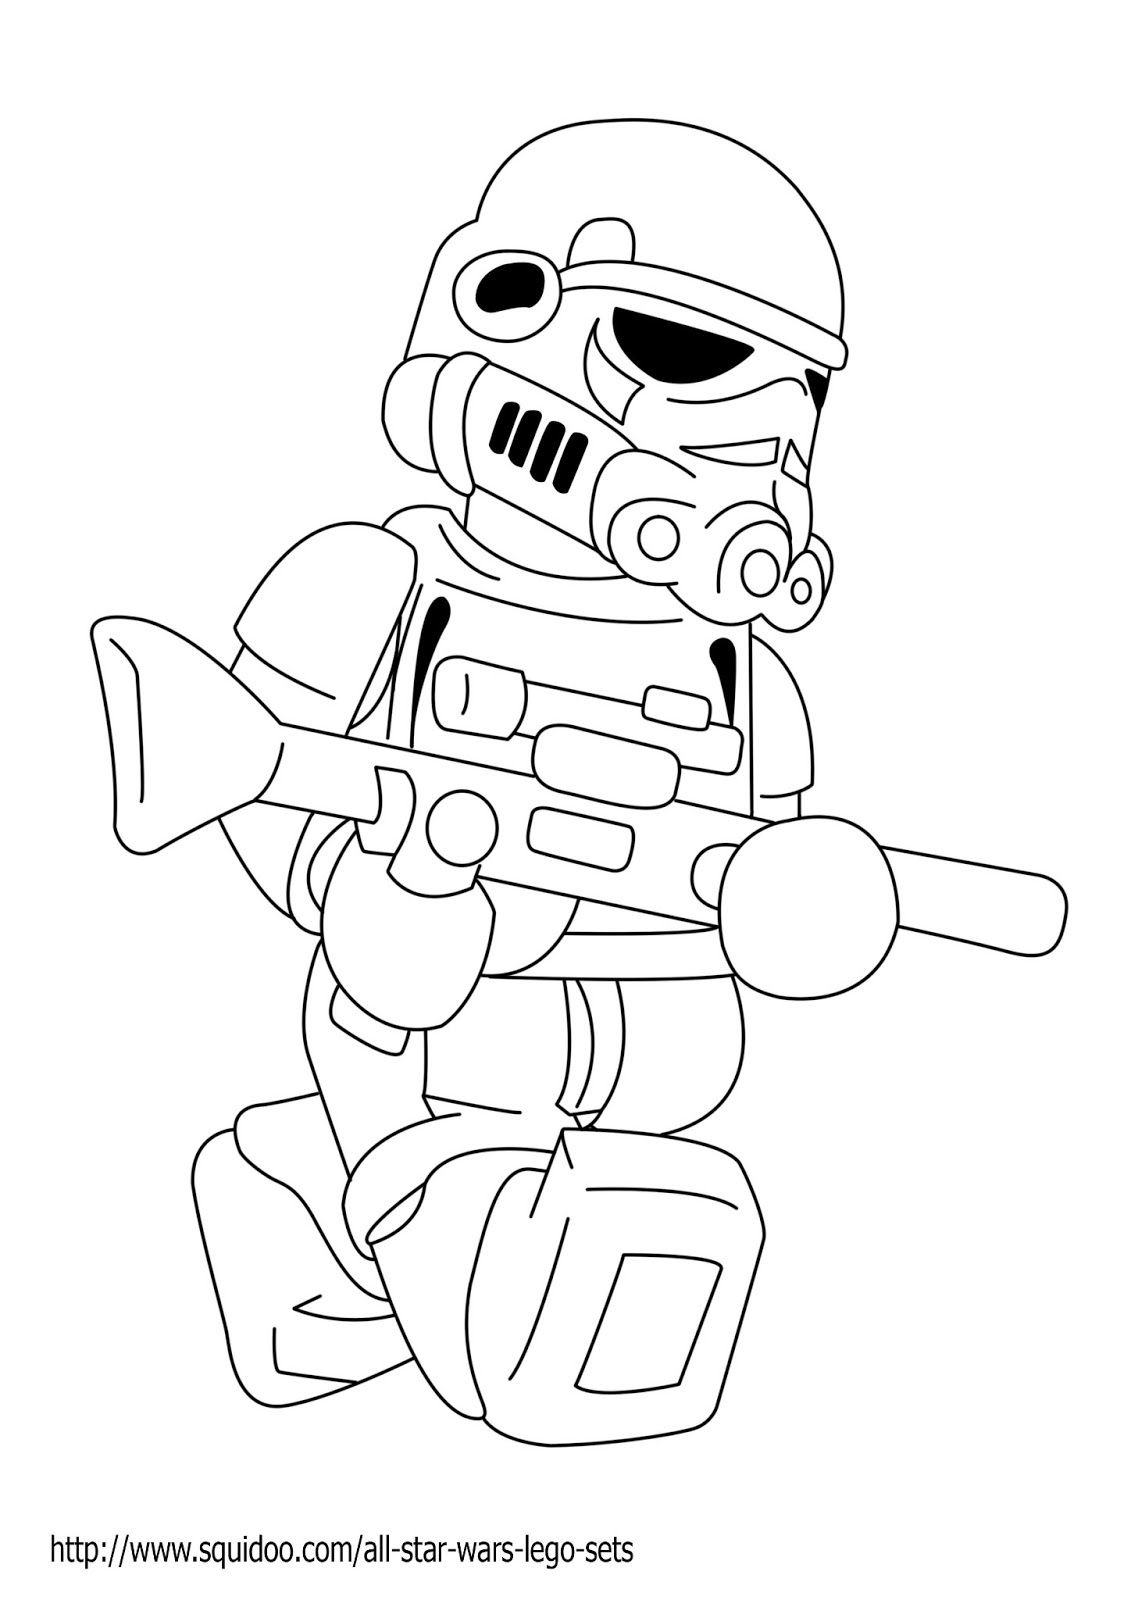 Star wars coloring pages stormtrooper lego Målarböcker